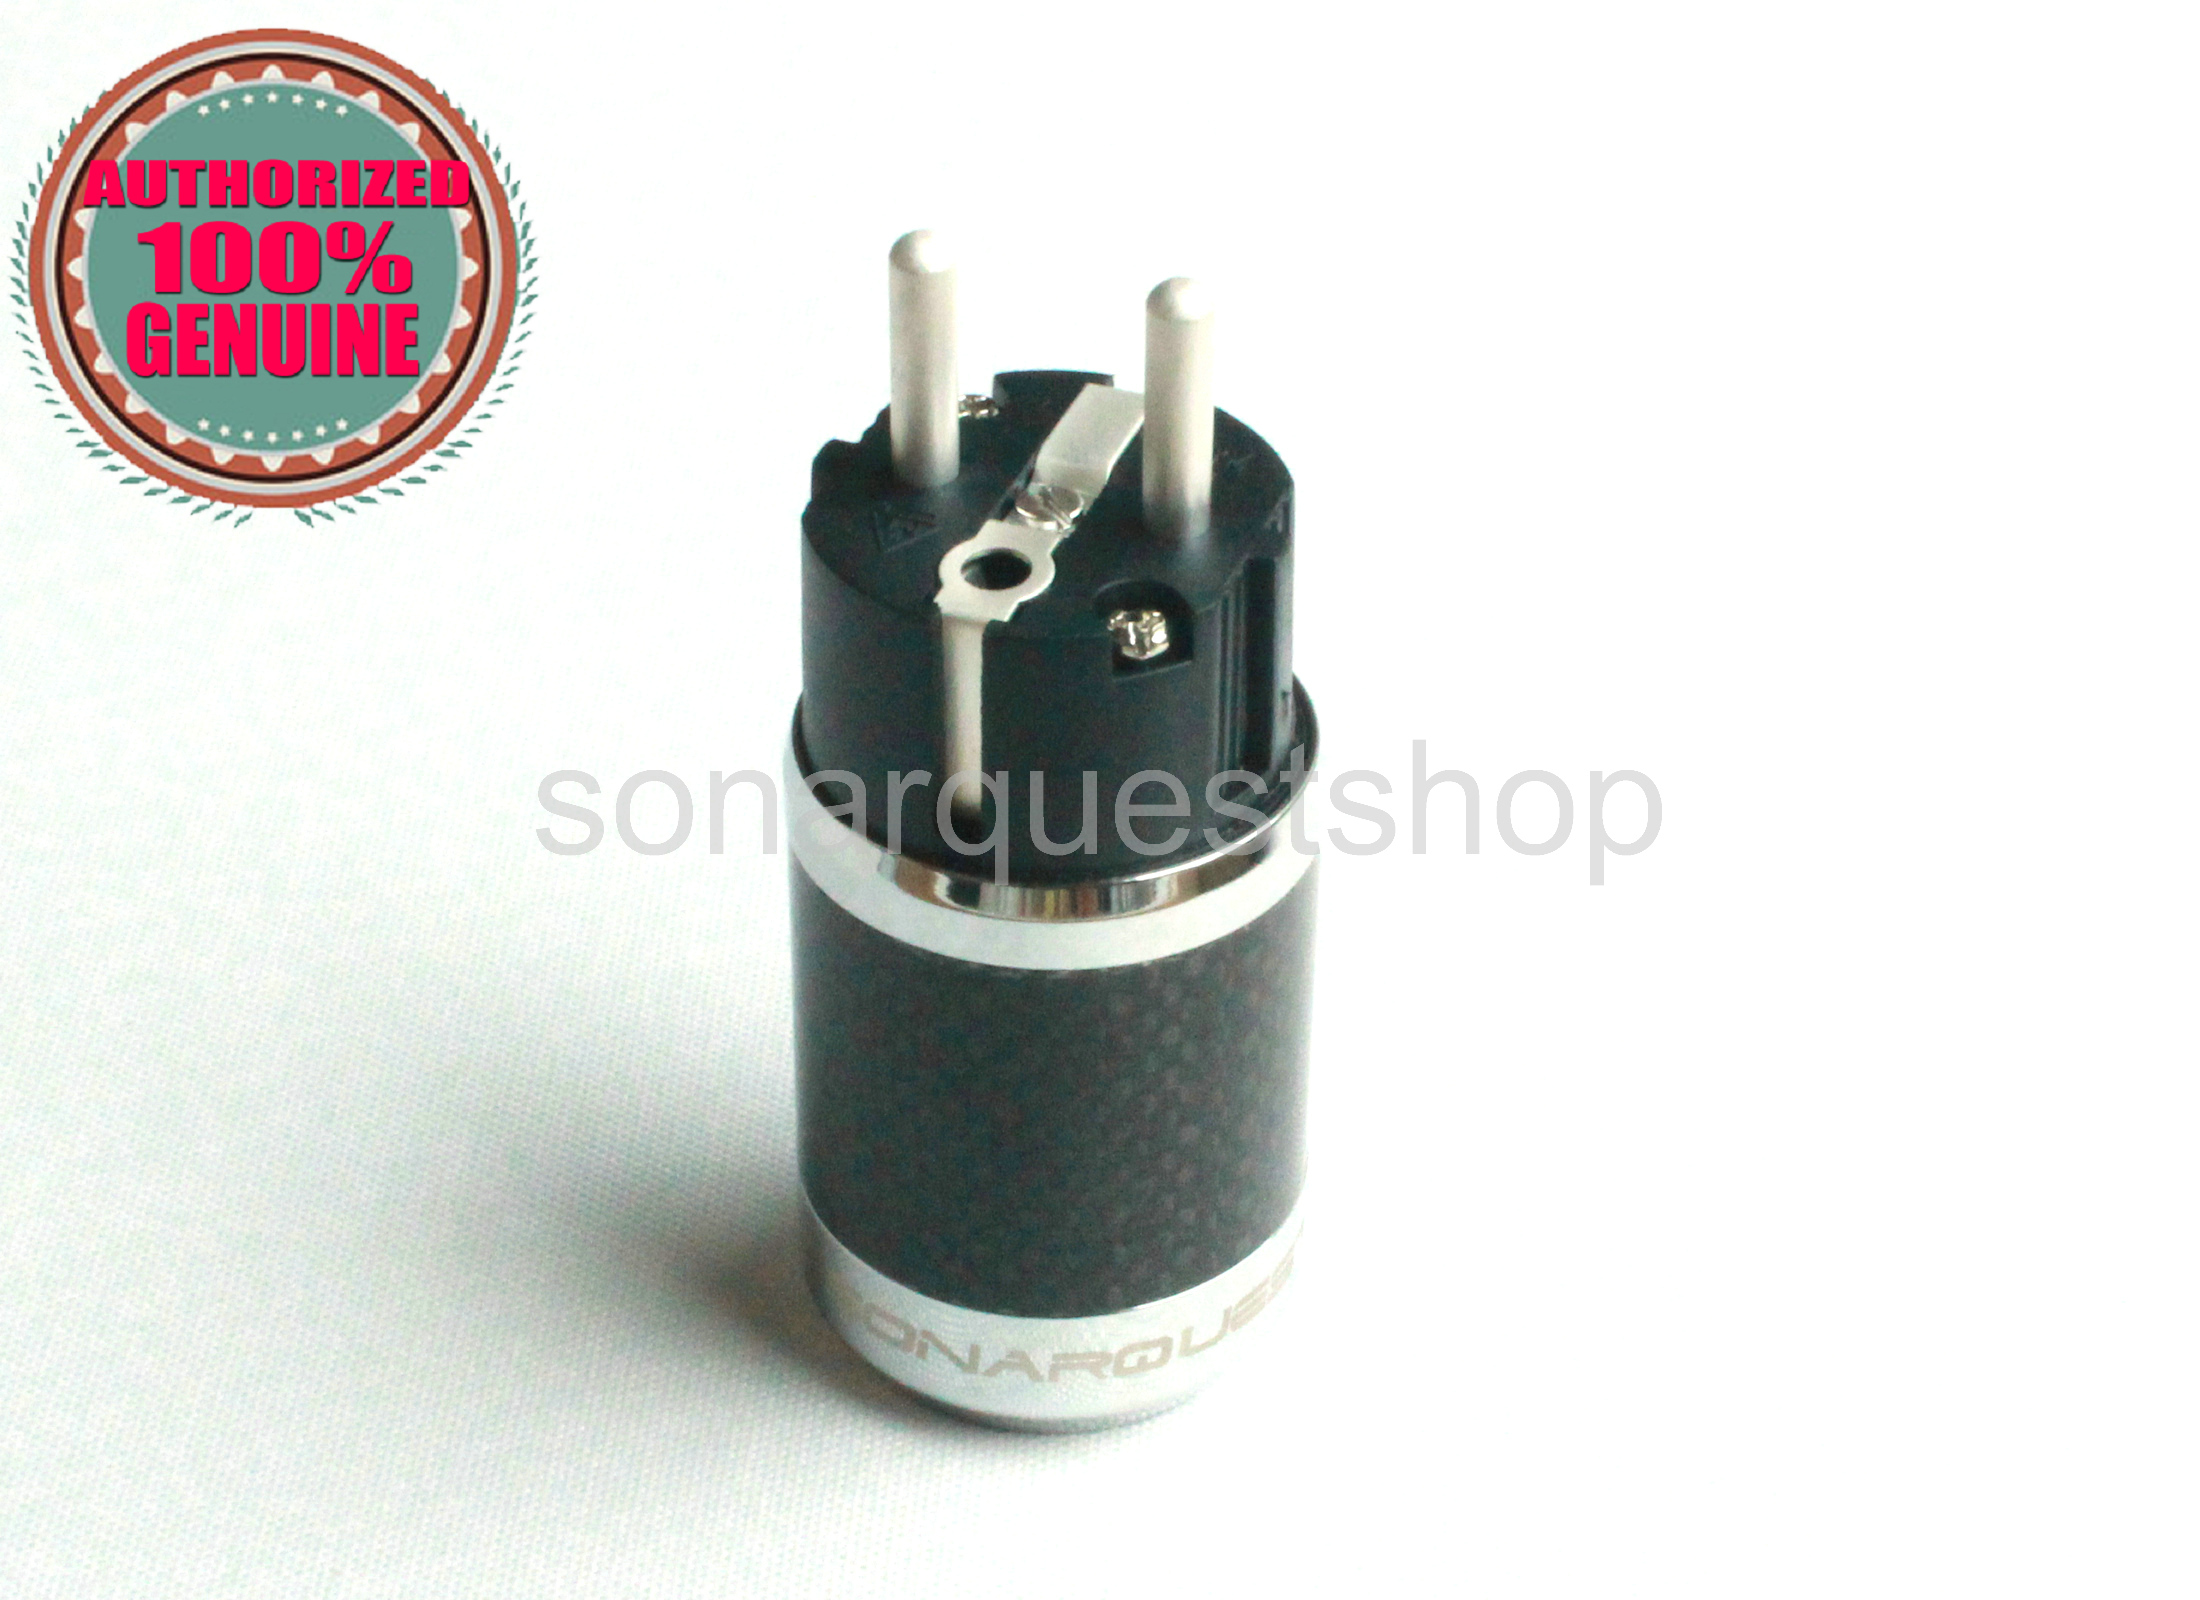 PYK SONARQUEST SQ-E39(Ag)B EU silver Plated BK Carbon fiber Power Plug